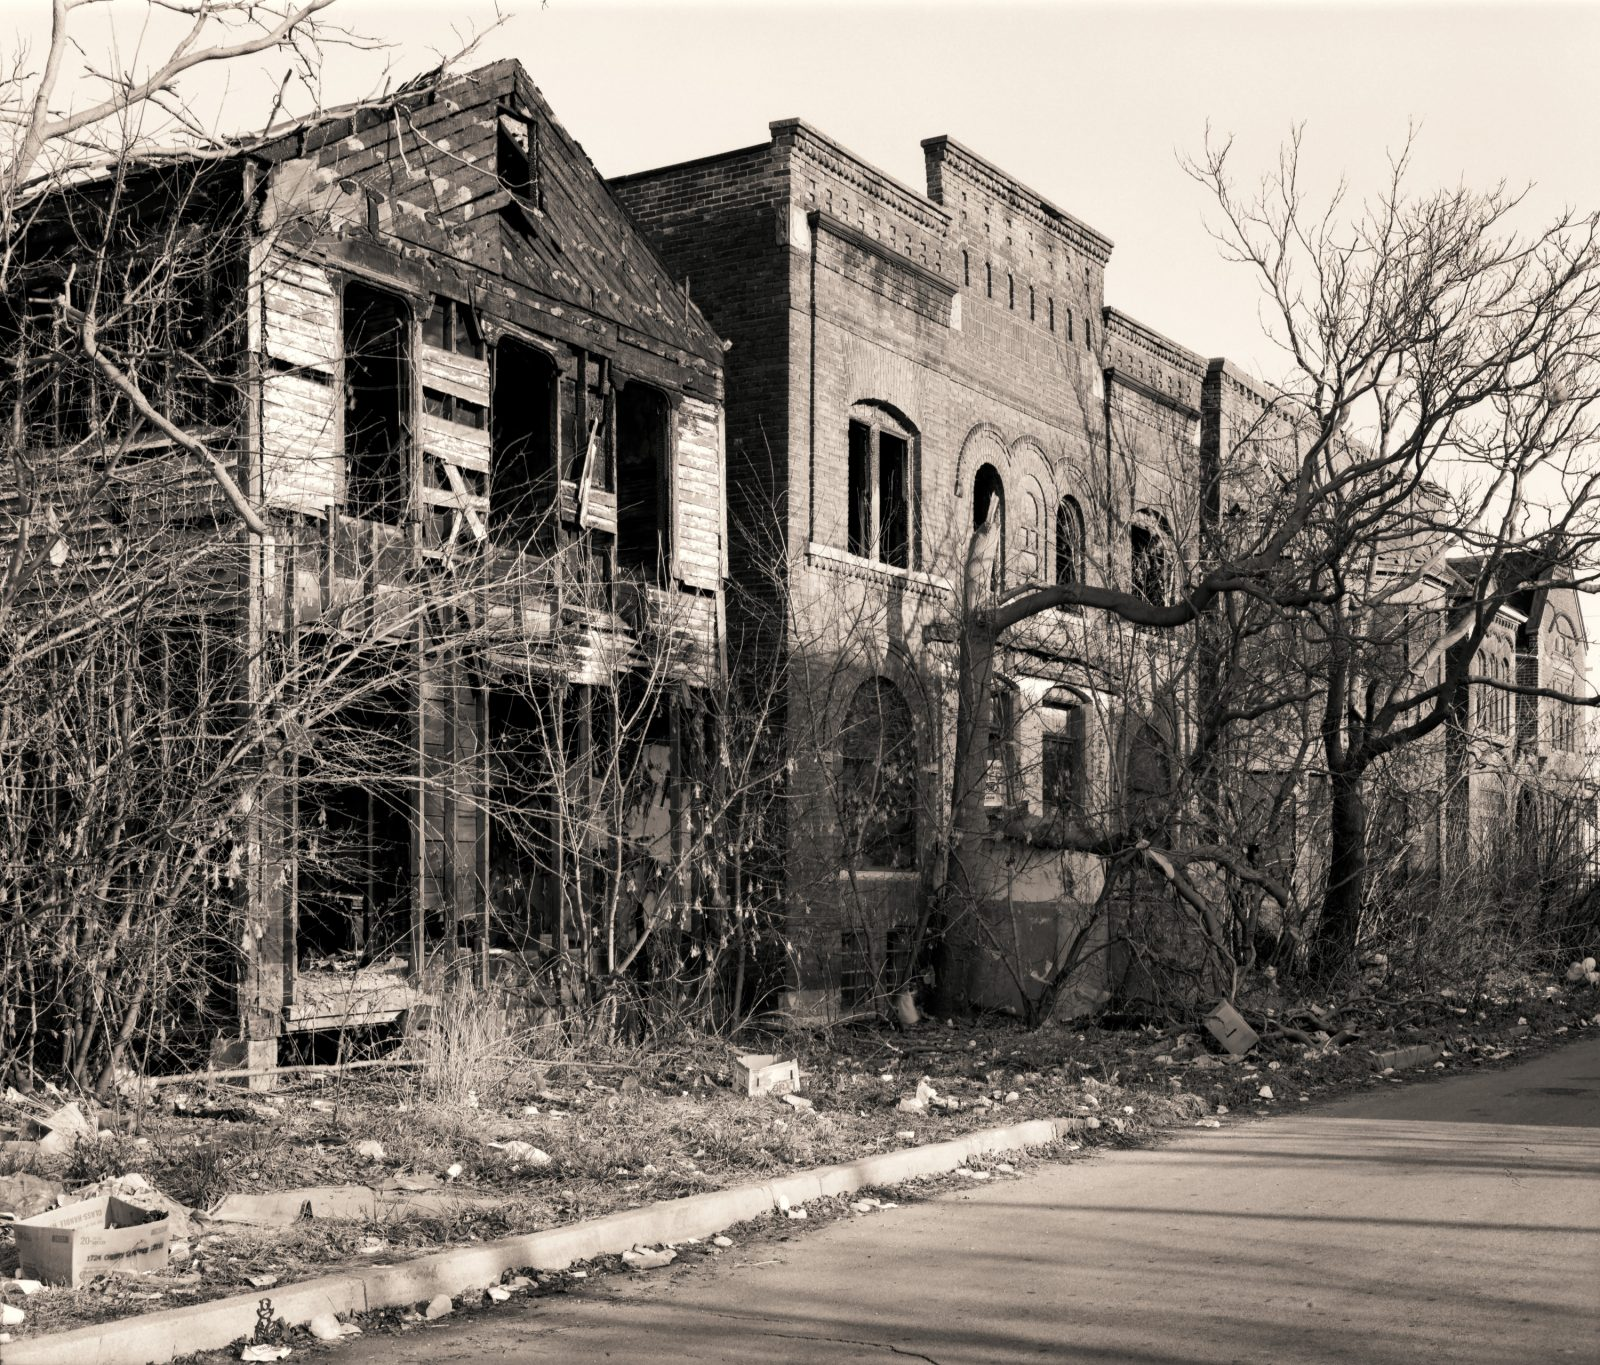 Abandoned houses in Detroit, Michigan.